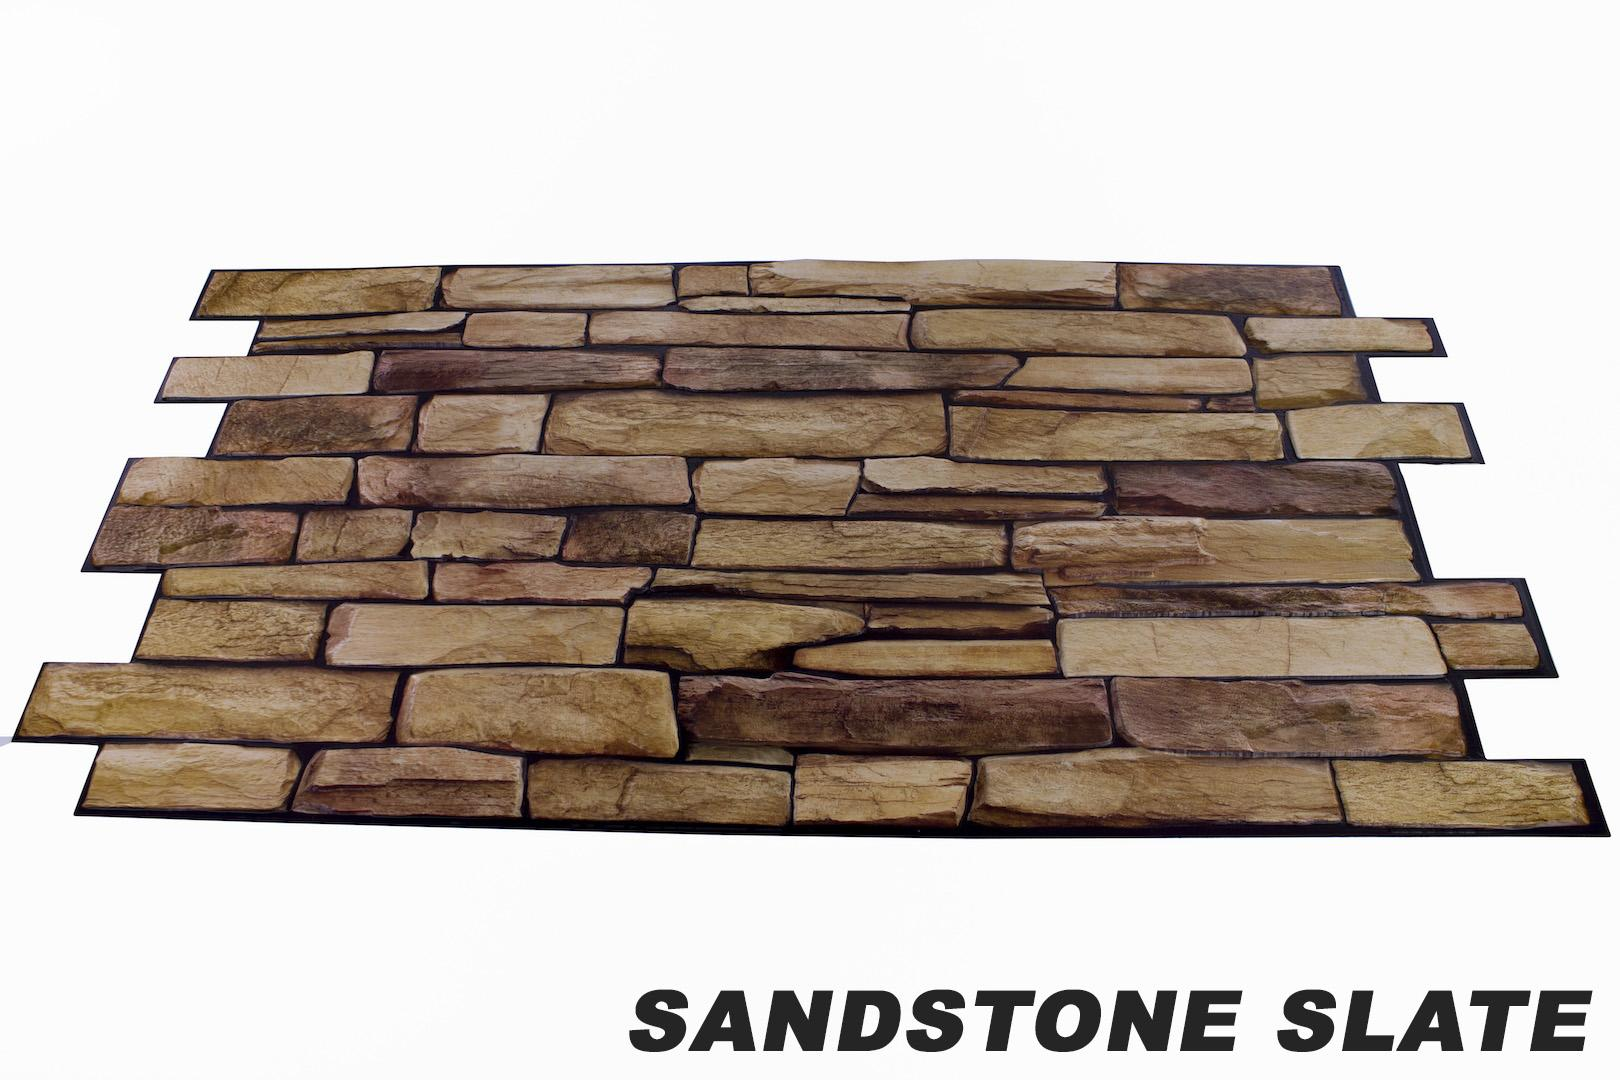 1 pvc dekorplatte mosaic wandverkleidung platten wand 95x48cm sandstone slate ebay. Black Bedroom Furniture Sets. Home Design Ideas